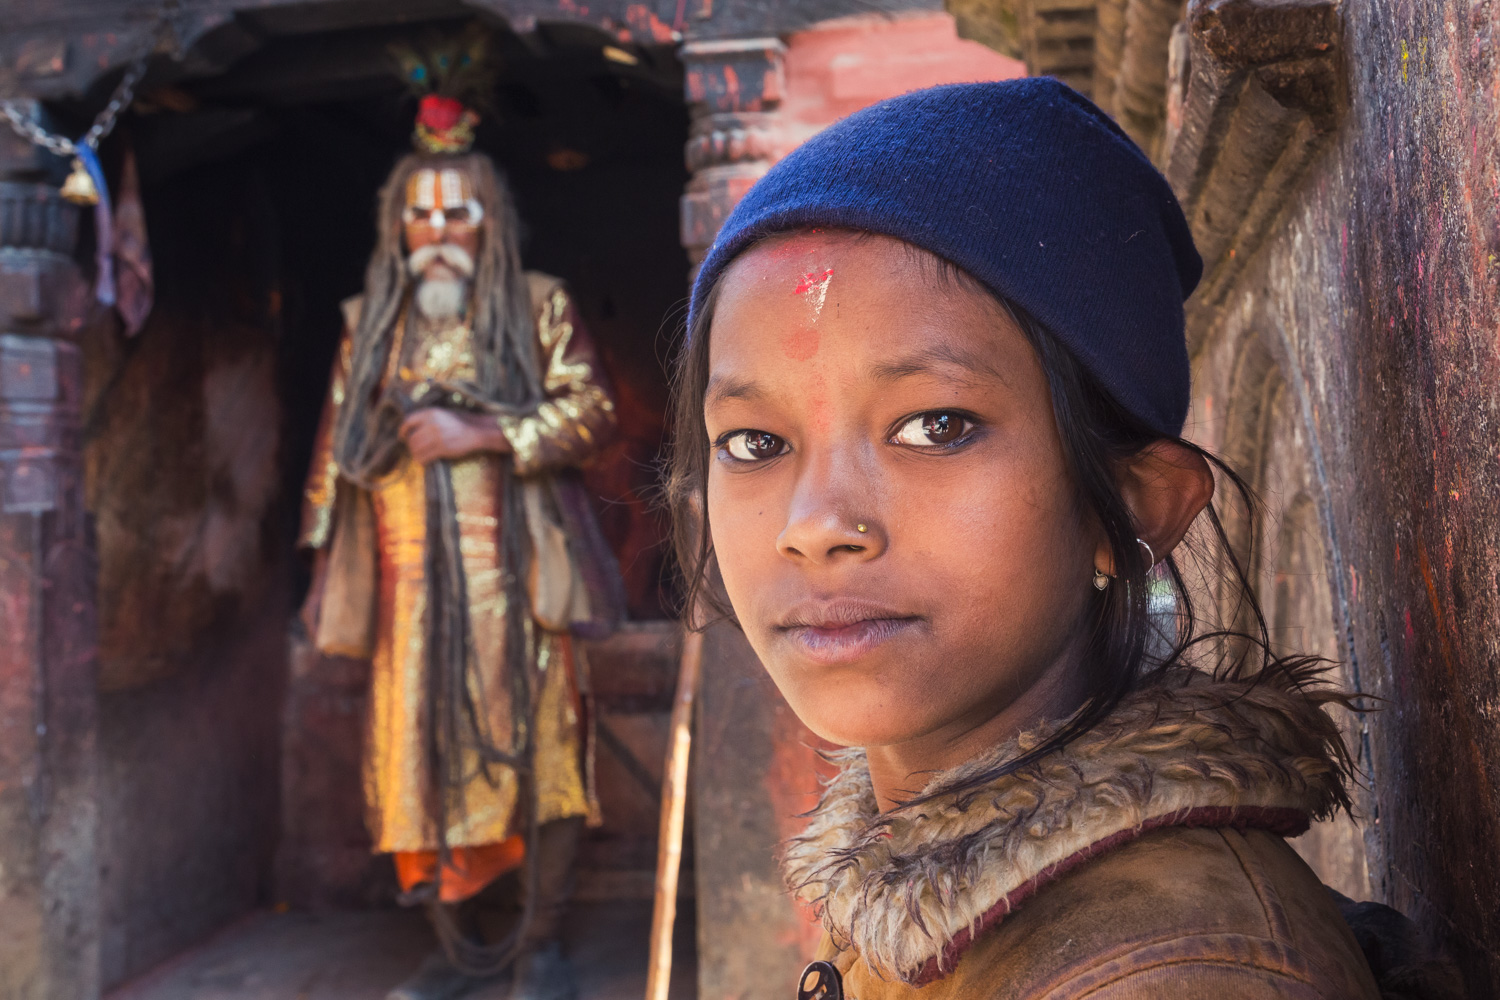 Girl in Patan and Sadhu in the background (Nepal) - Copyright: Daniel Hofmann